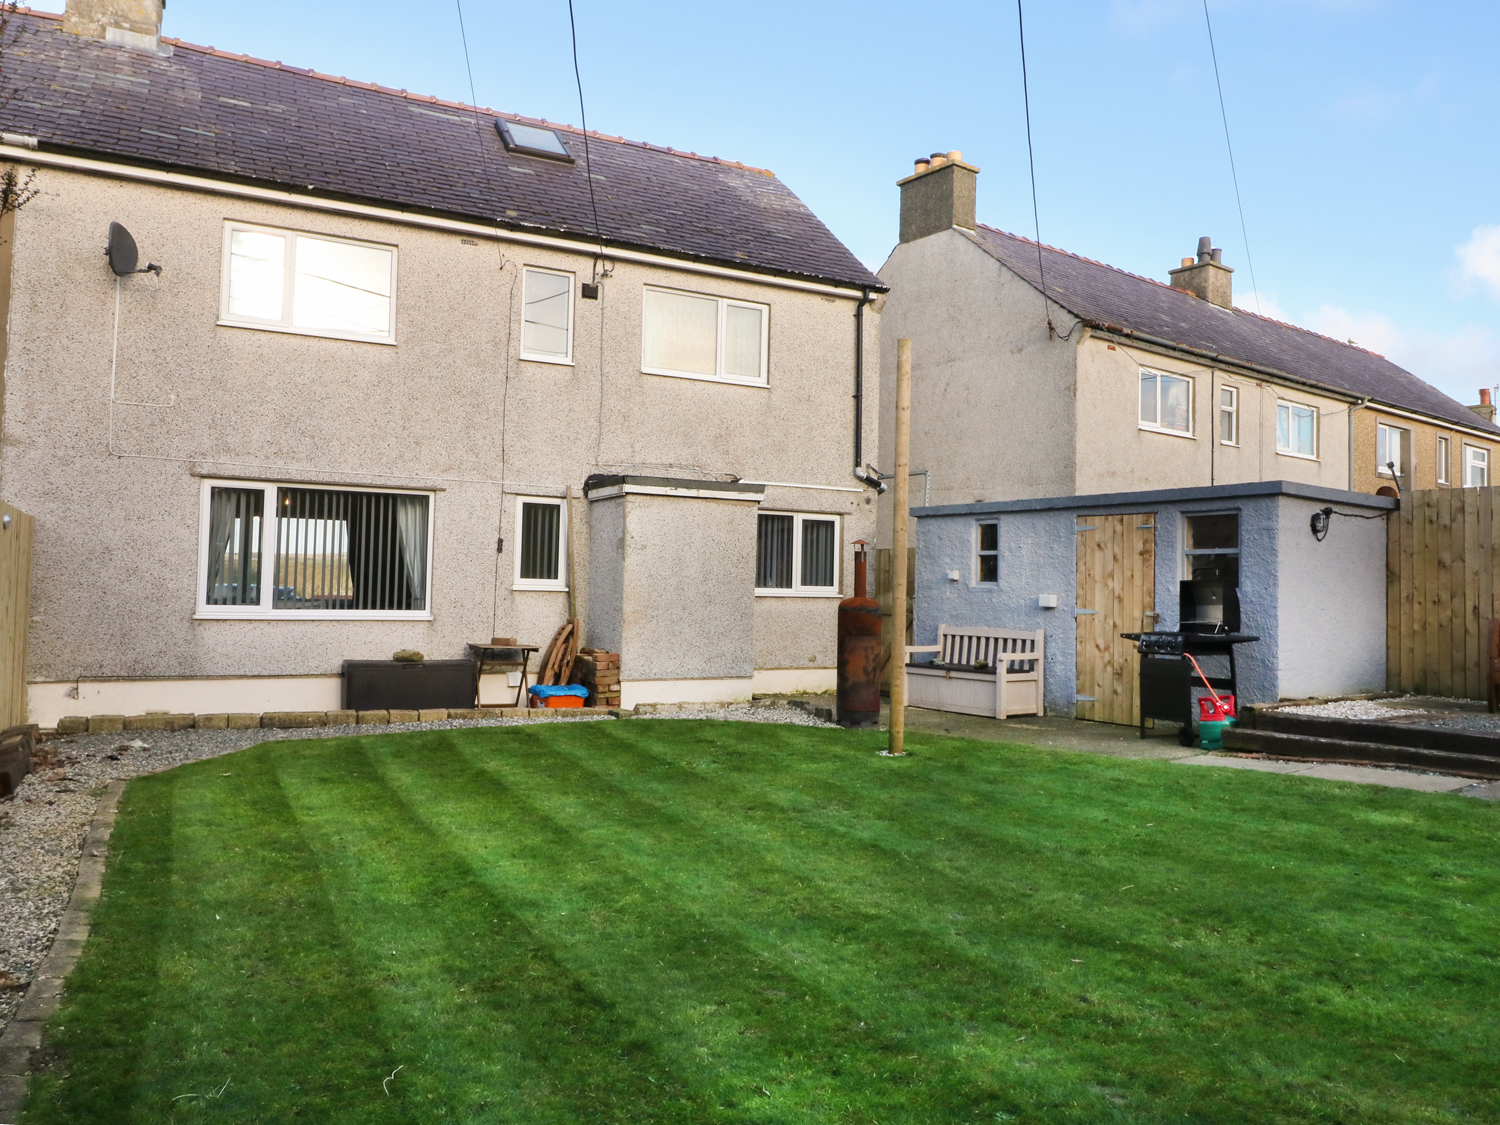 Delfryn In Cemaes Bay This Delightful Semi Detached